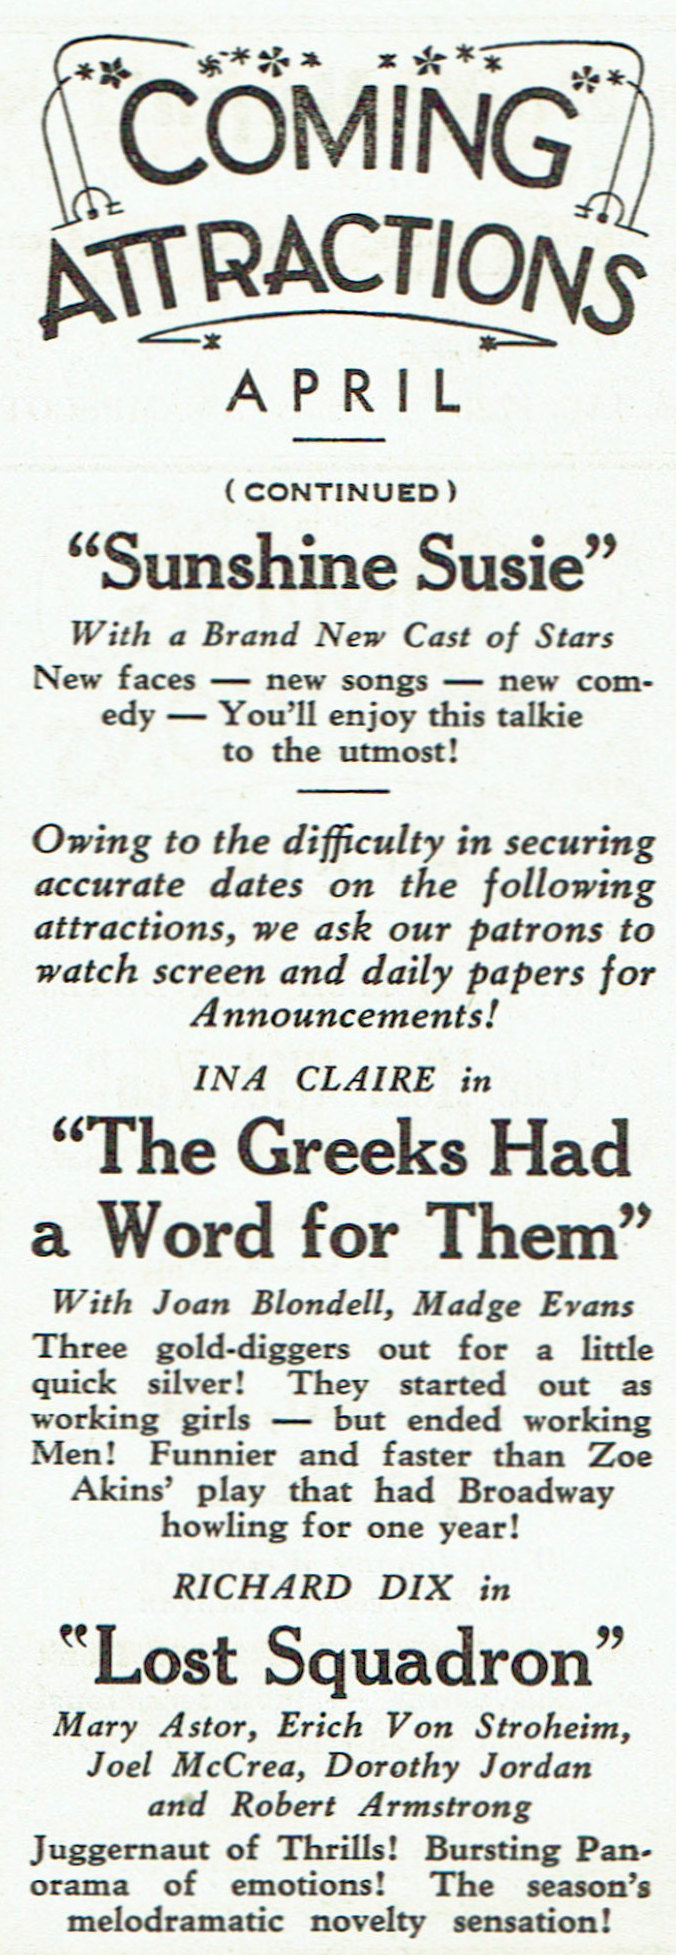 carole lombard publix theatre screen review april 1932kb